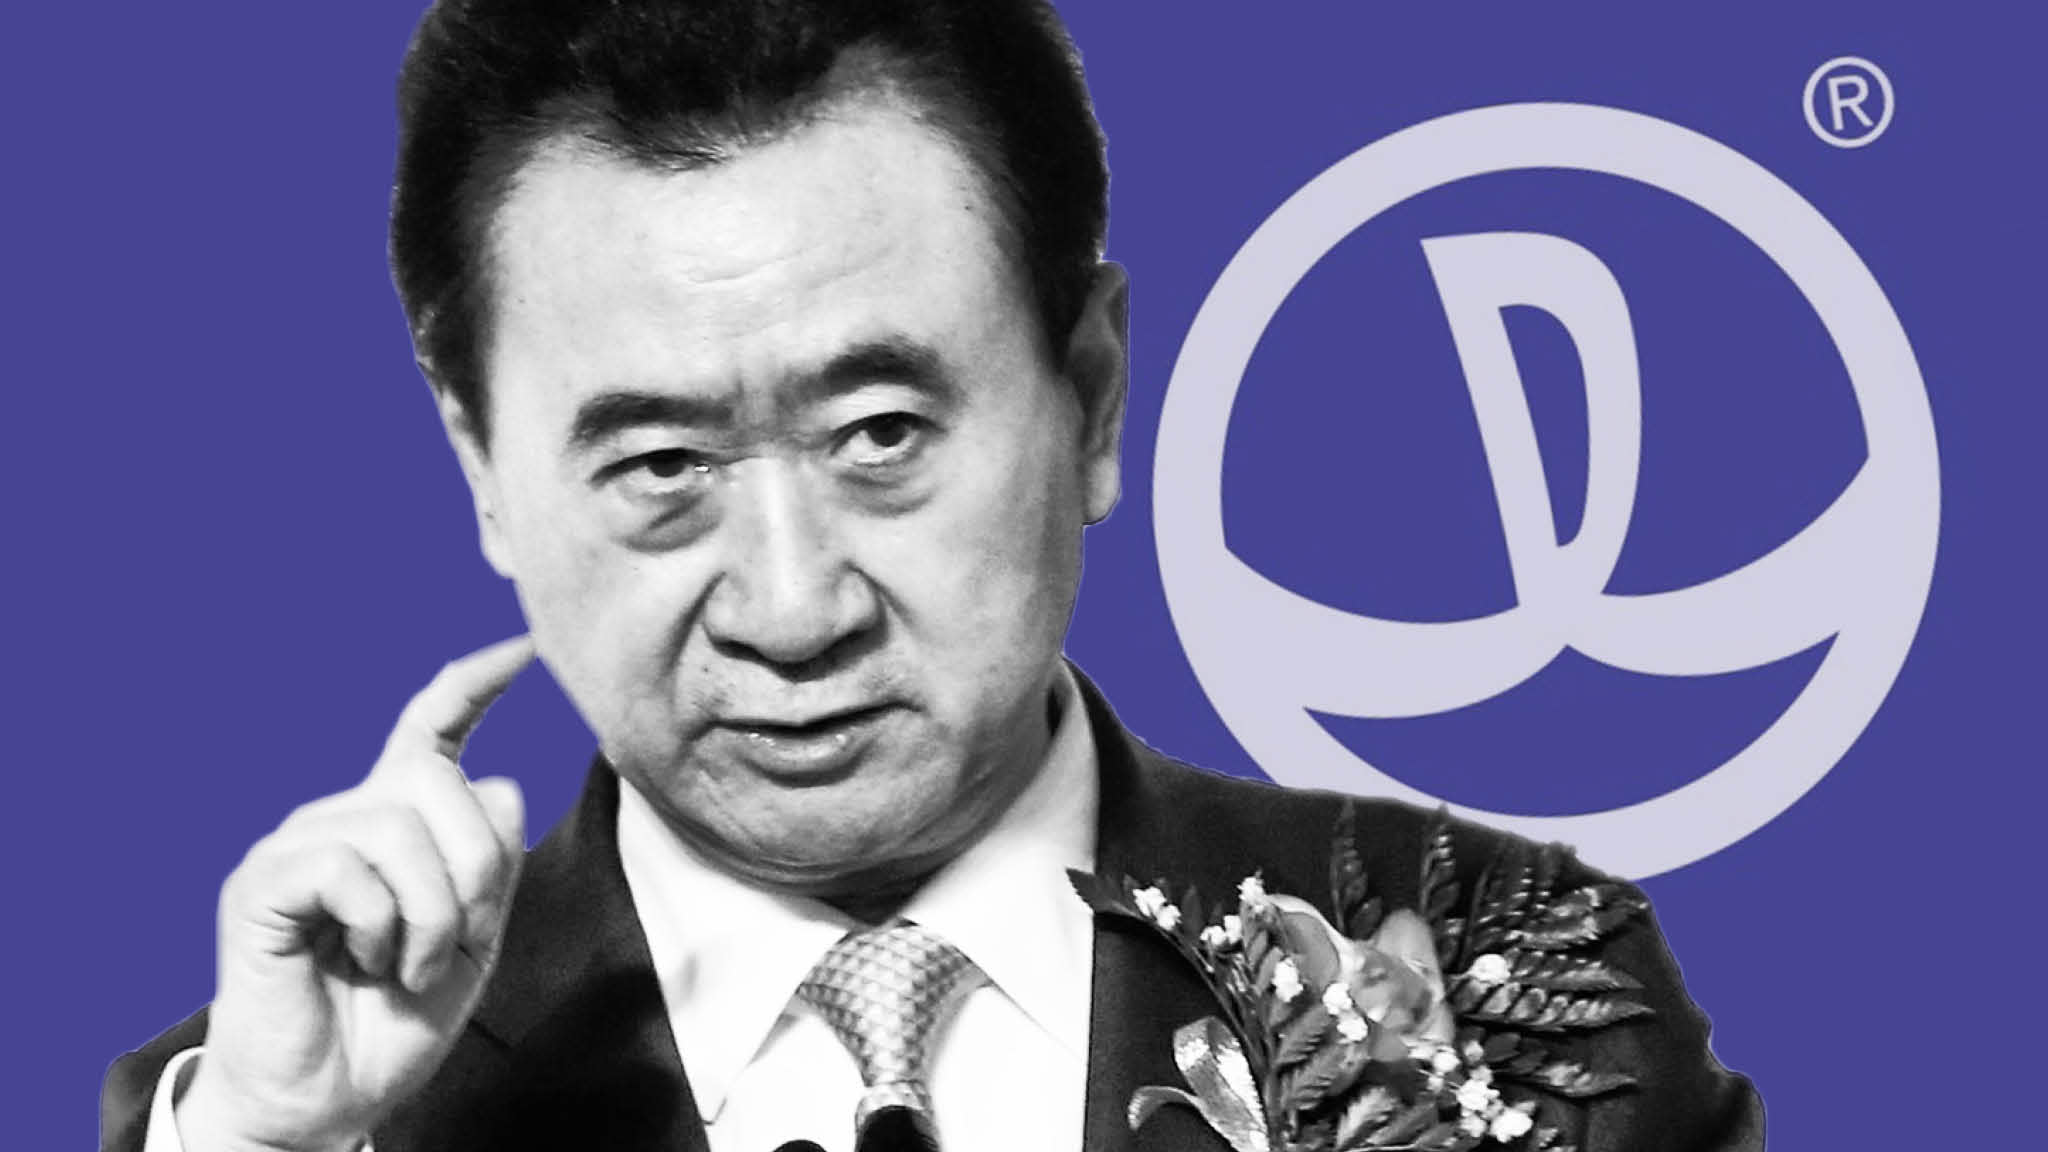 Wanda's hopes for global lifestyle empire fade as it beats retreat